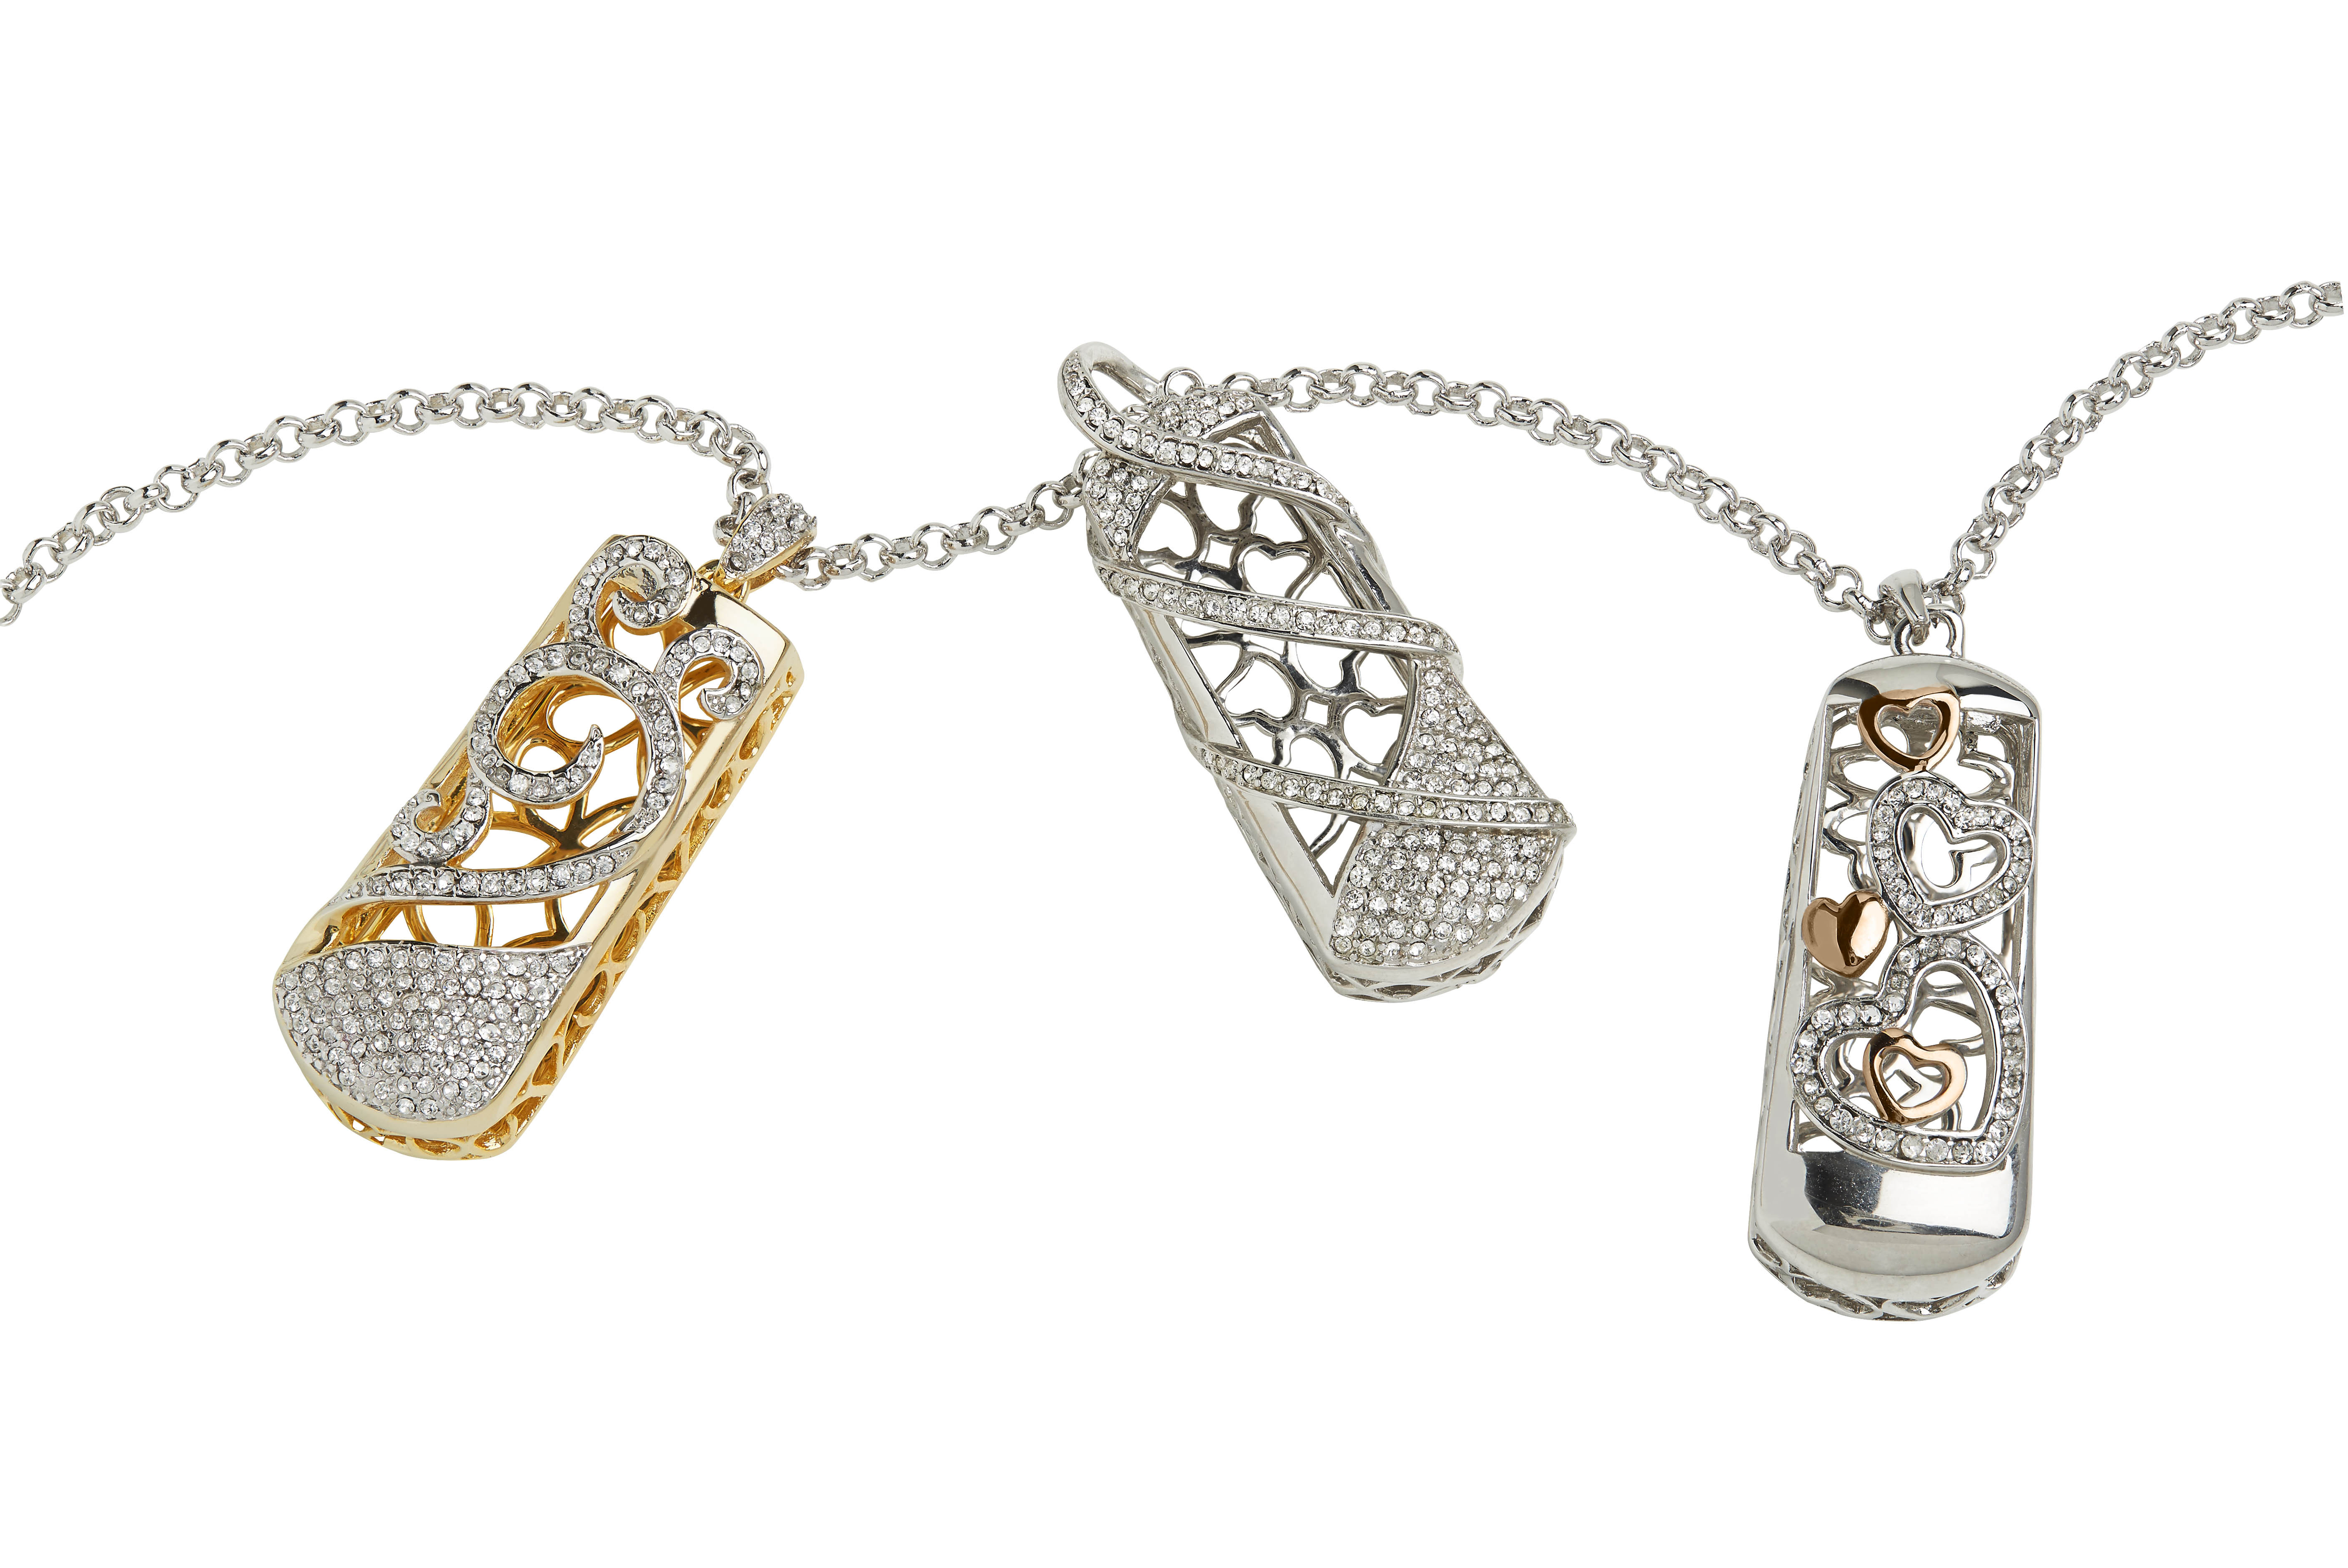 Richline to Unveil Smart Jewelry Designs and Partnerships at JCK | Business Wire